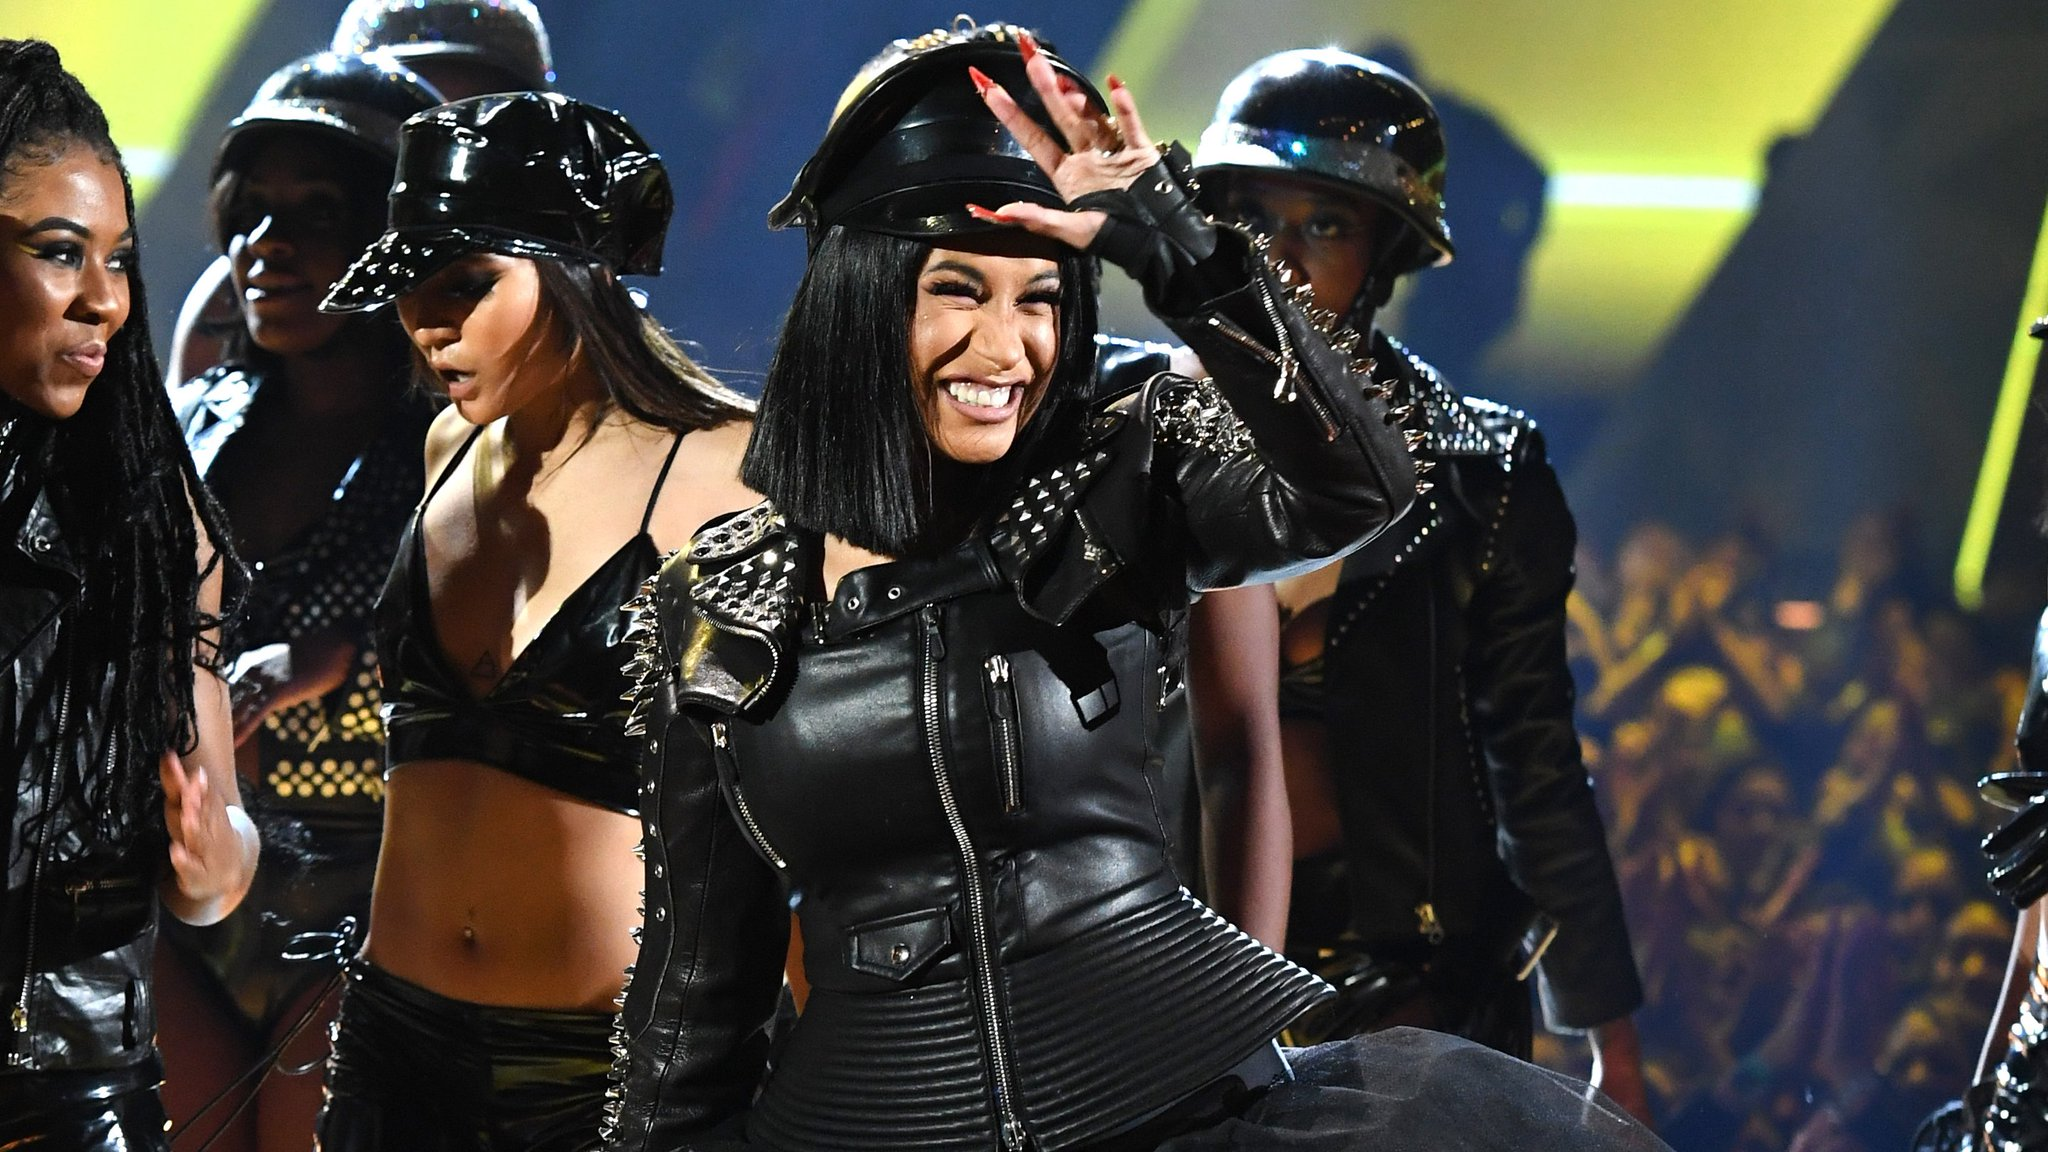 See Cardi B deliver a fierce hit song medley at the #iHeartAwards https://t.co/pBaA7P0Qmr https://t.co/QX25aS0kbF